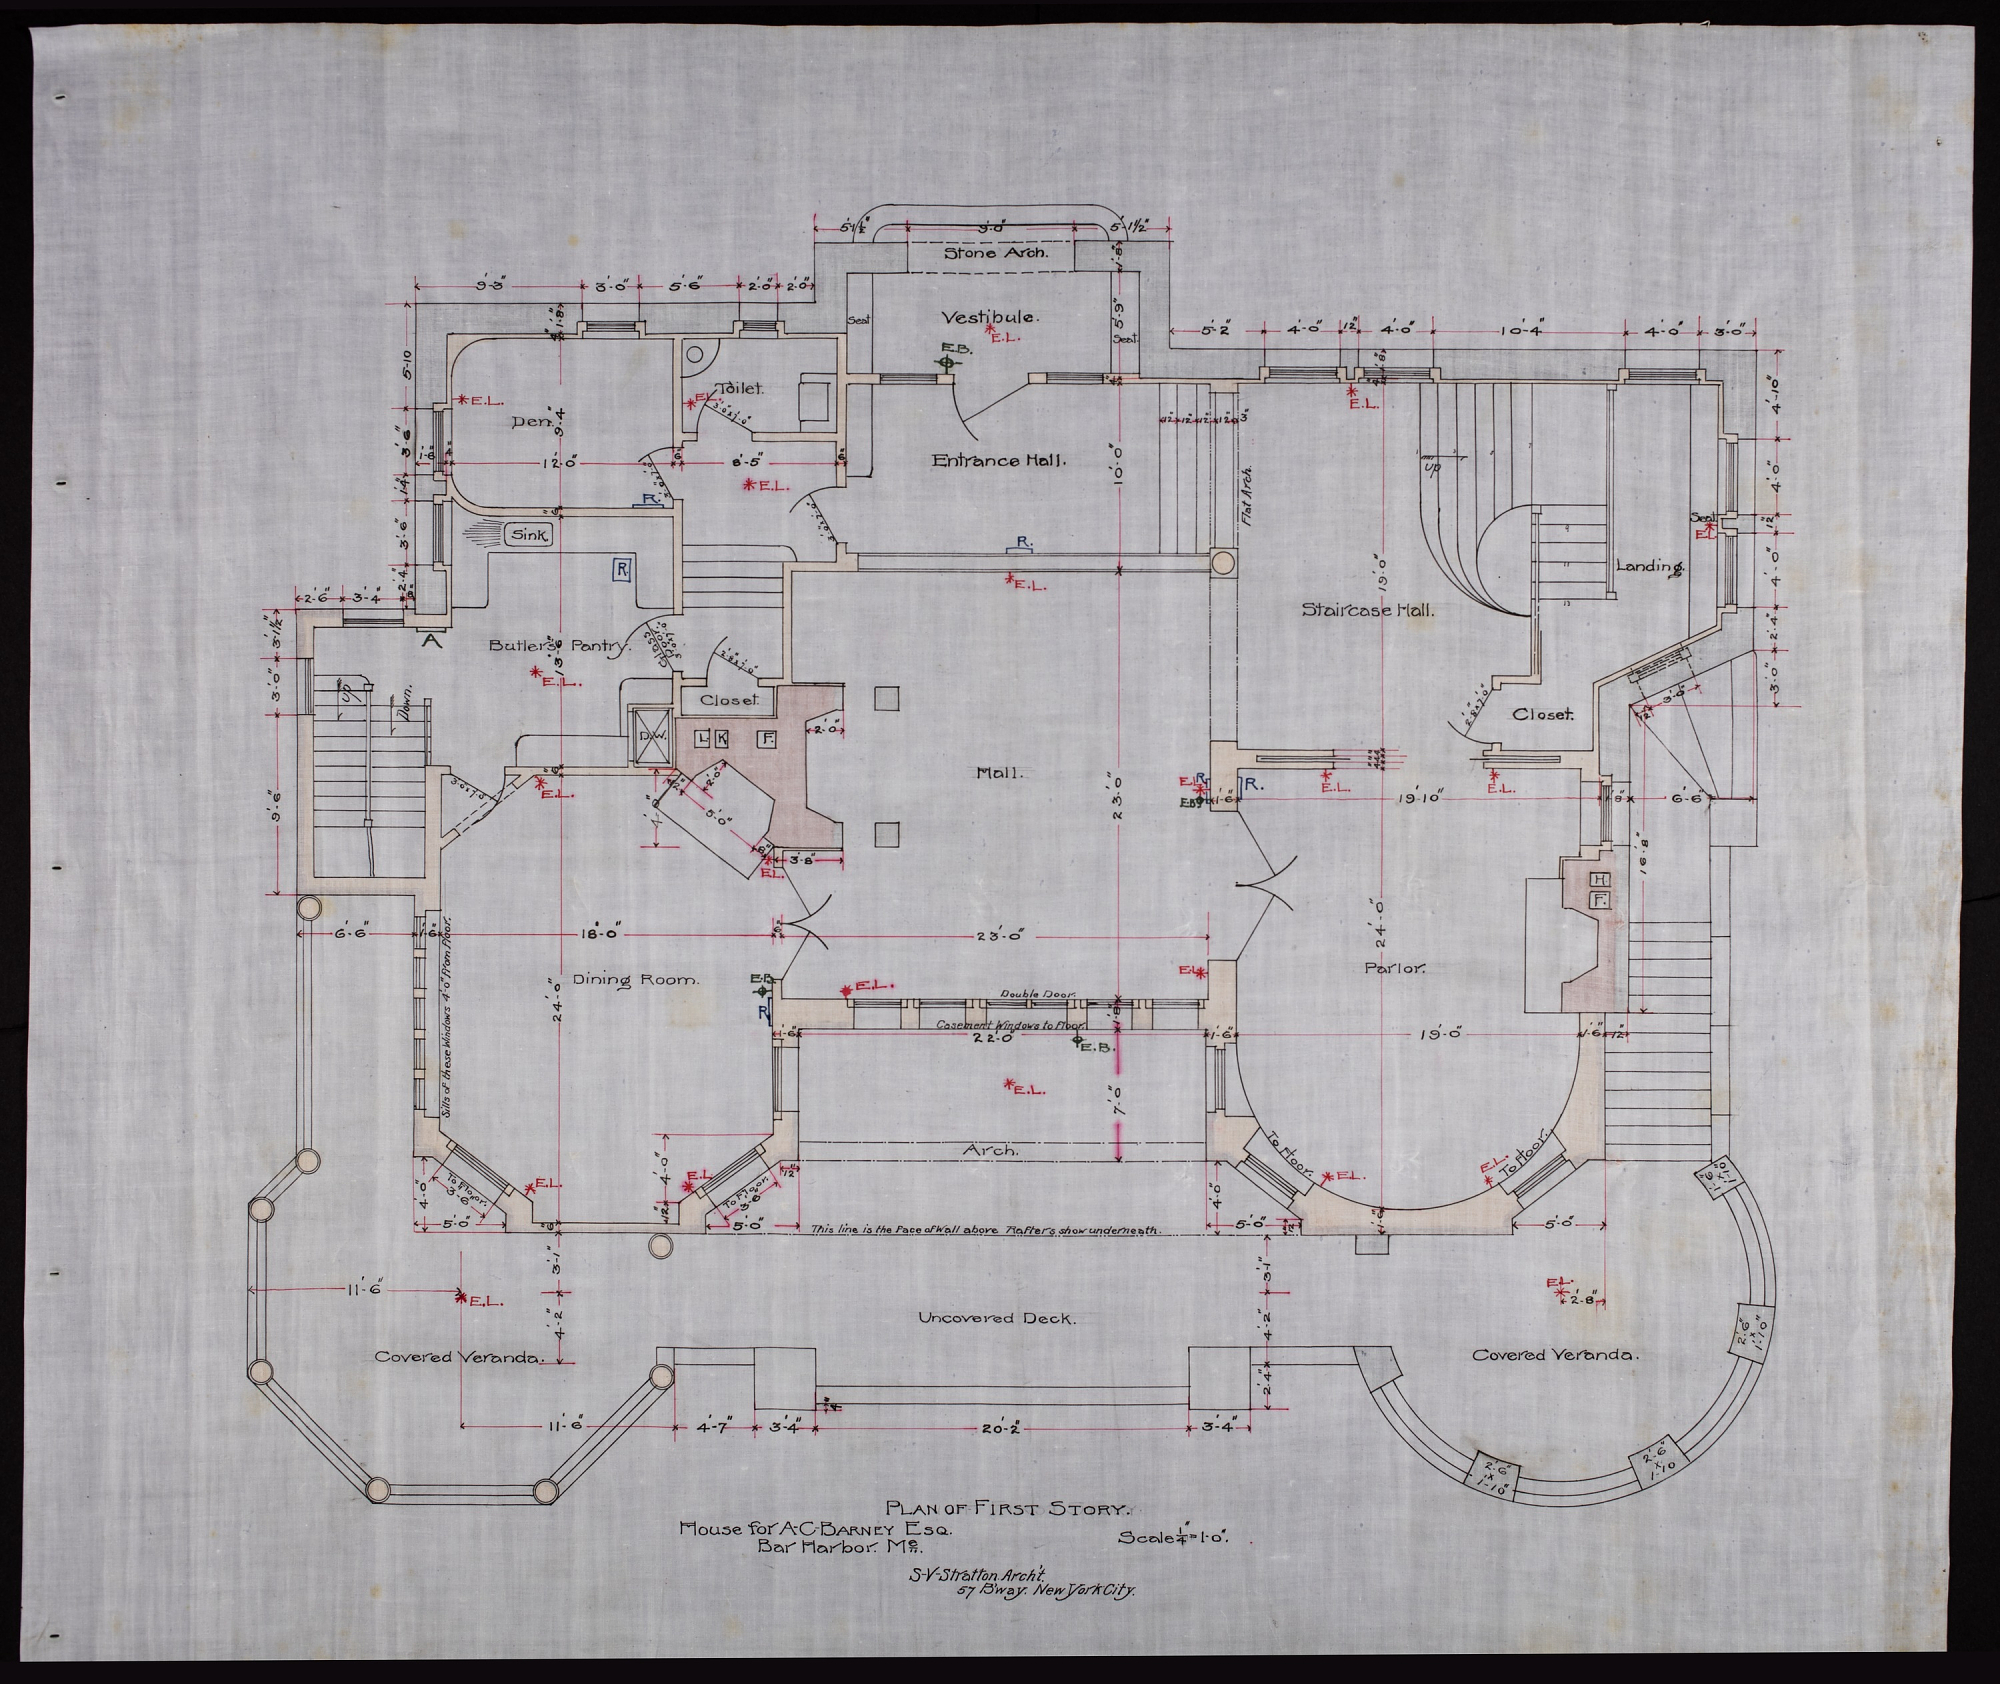 Plan showing den, butler's pantry, dining room, mall, and parlor